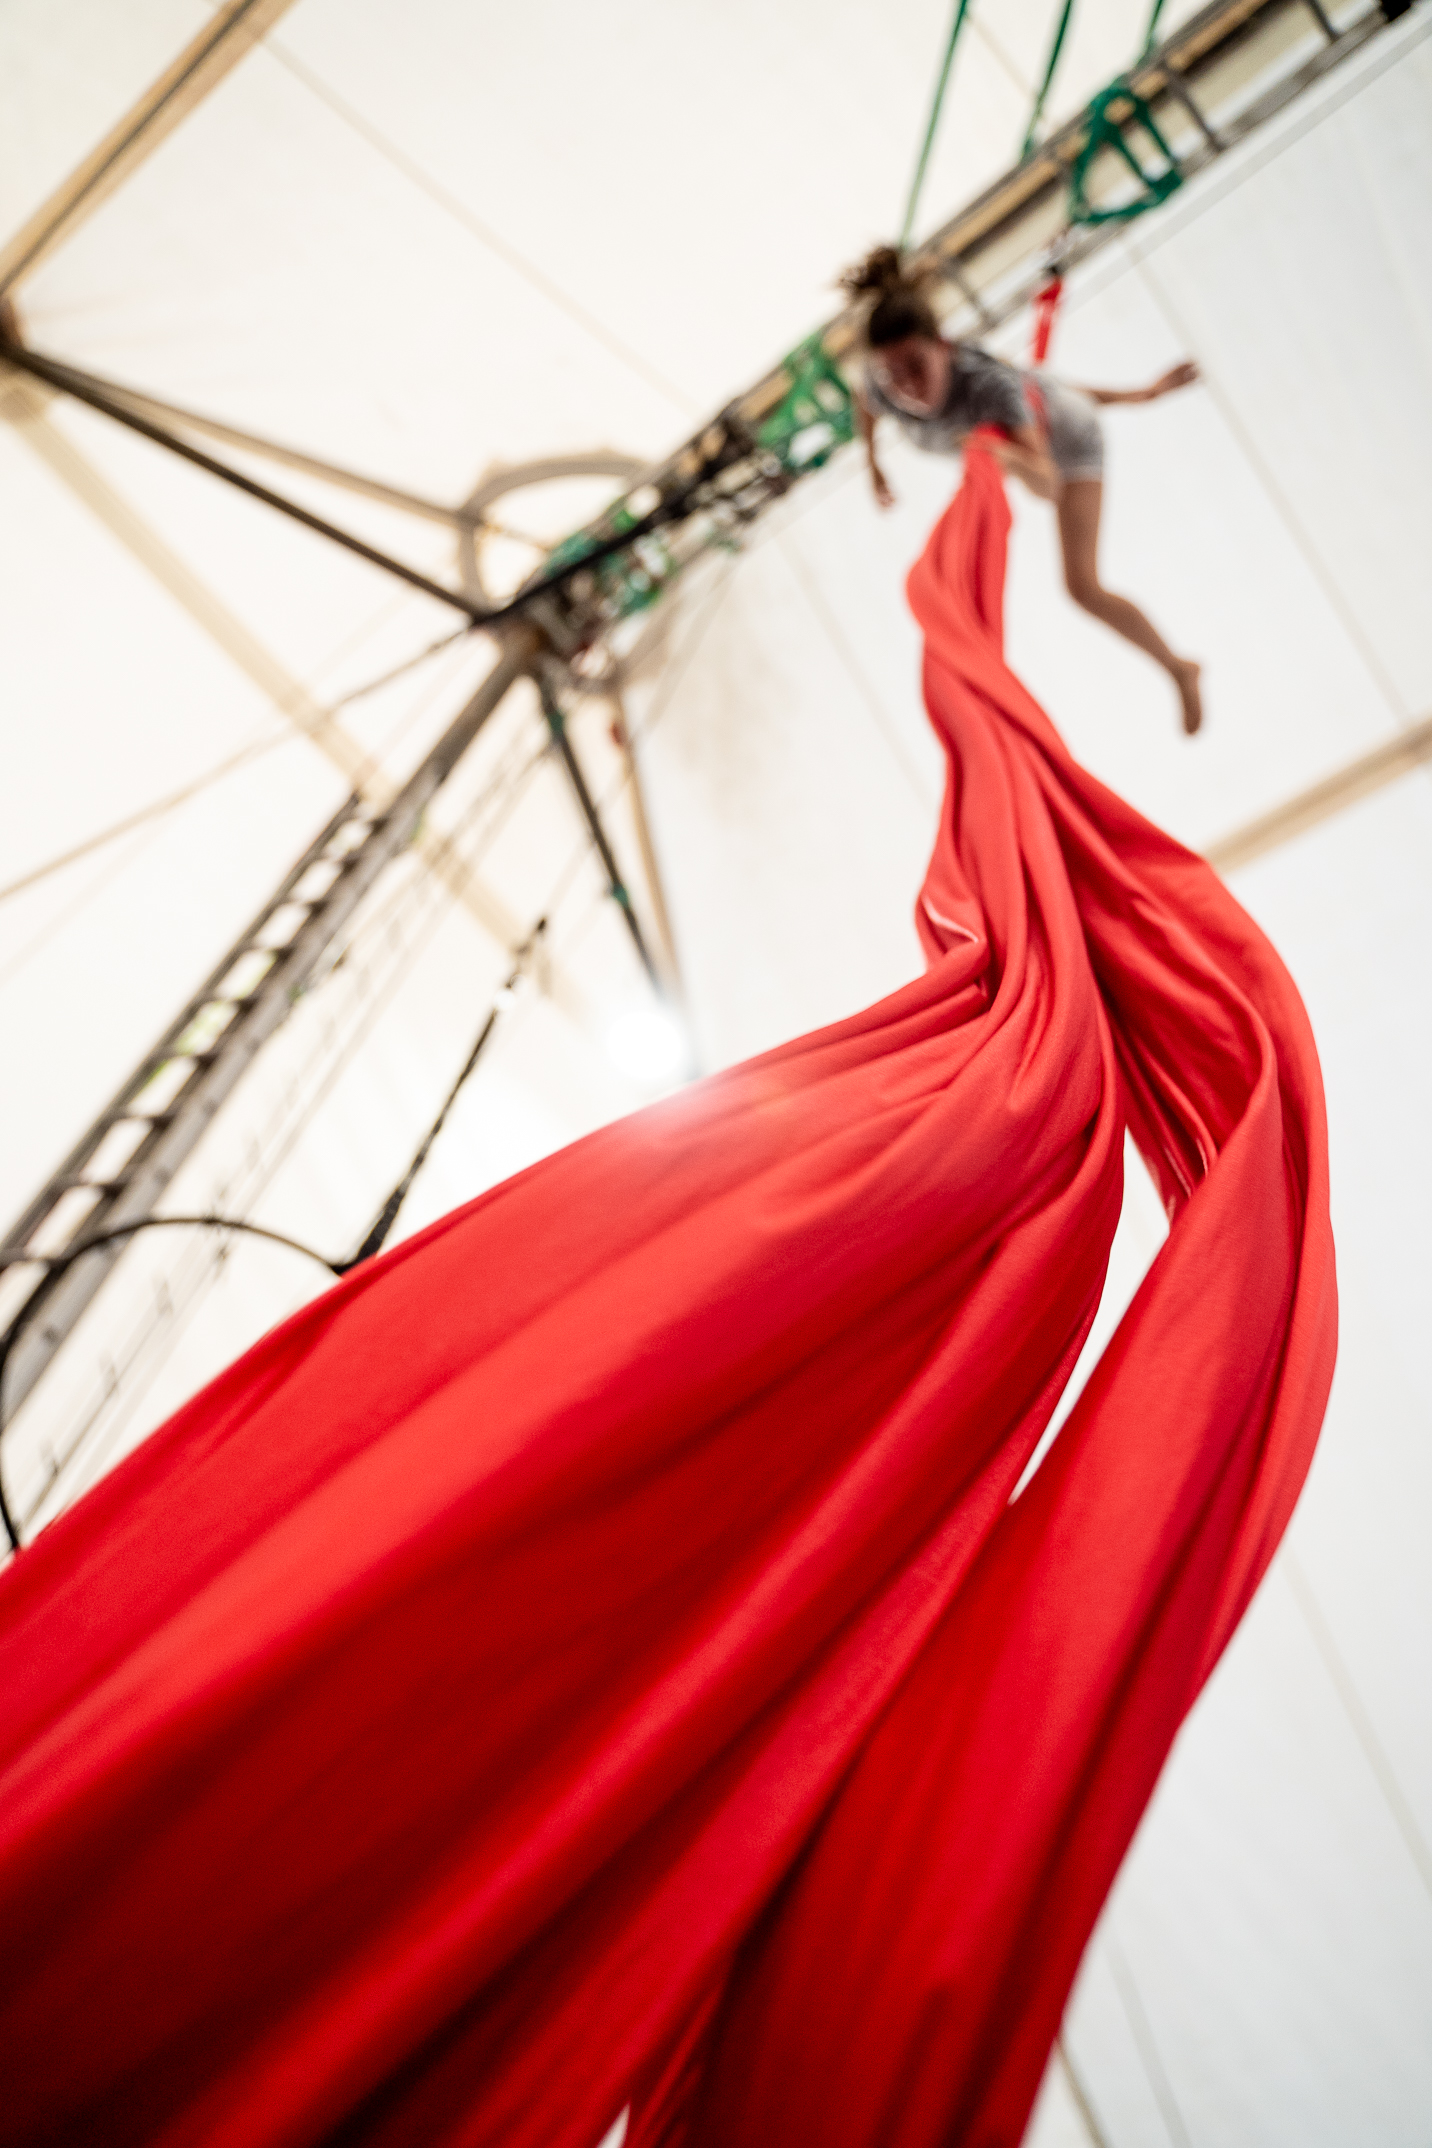 a distant figure is at the top of an aerial silk